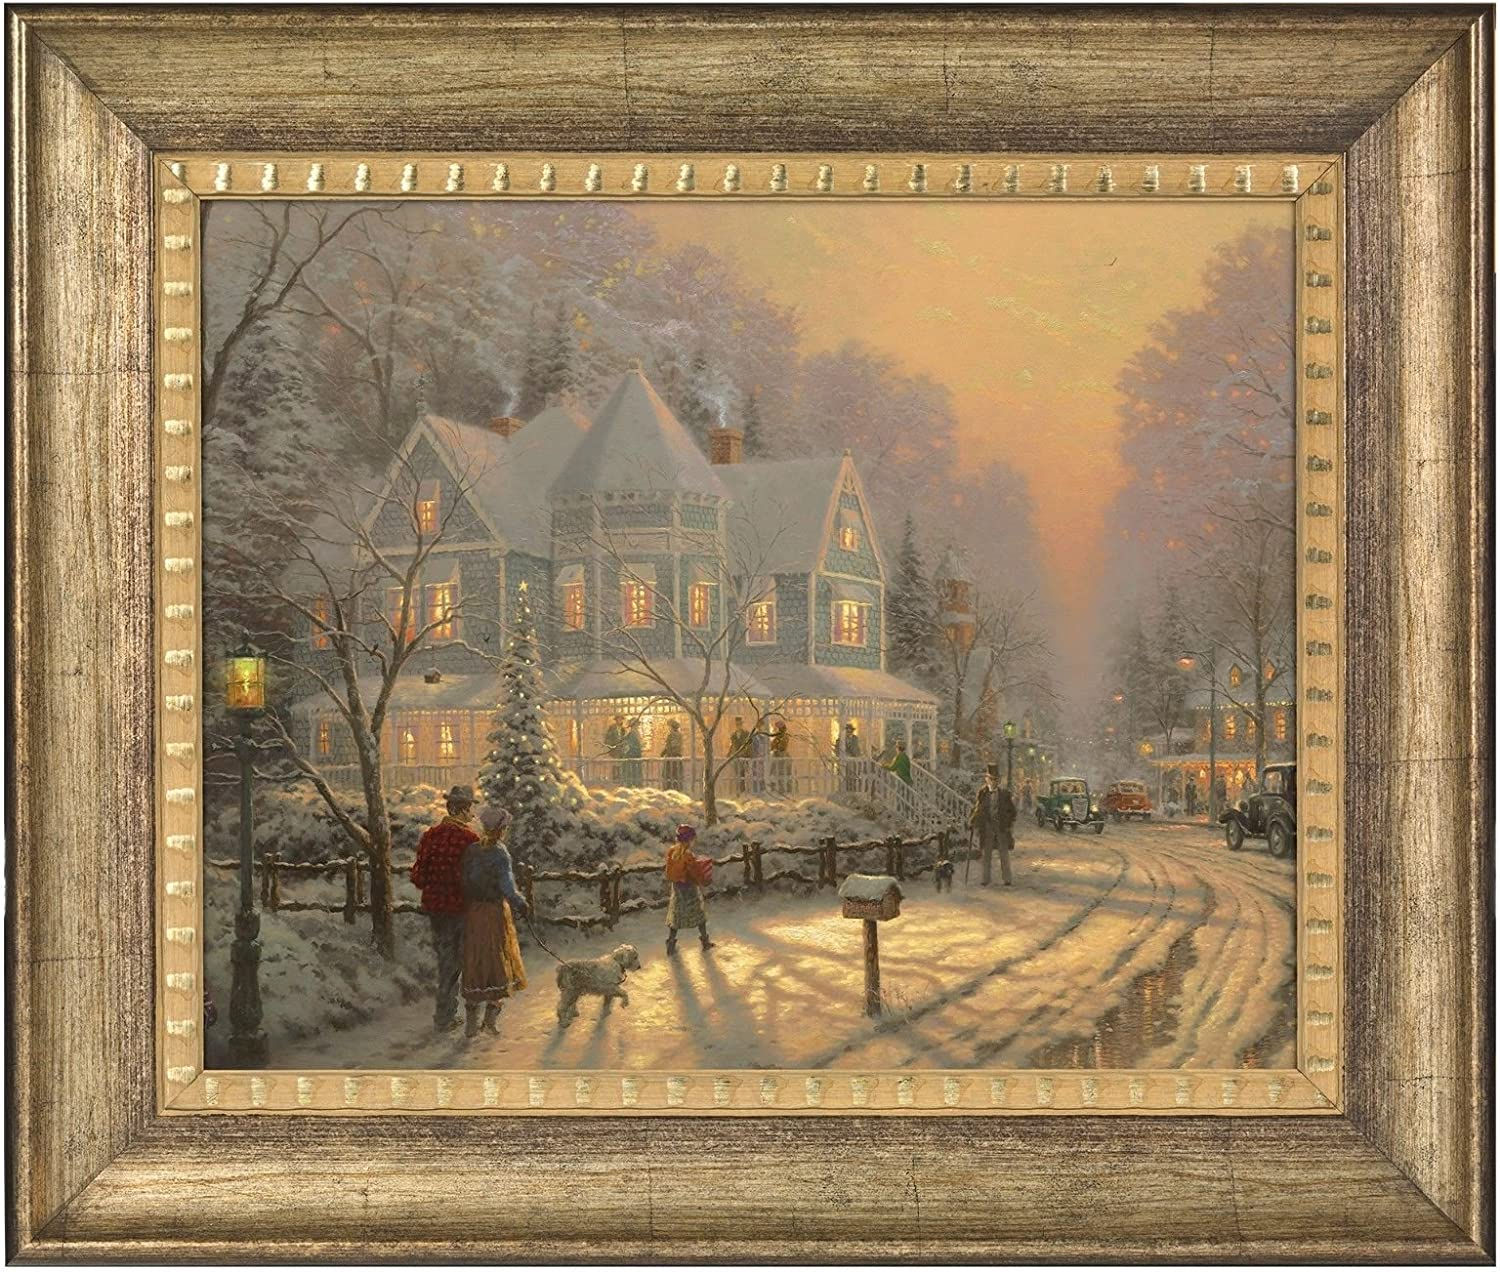 Thomas Kinkade A Holiday Gathering 16 X 20 Brushstroke Vignette Burnished Gold Posters Prints Amazon Com